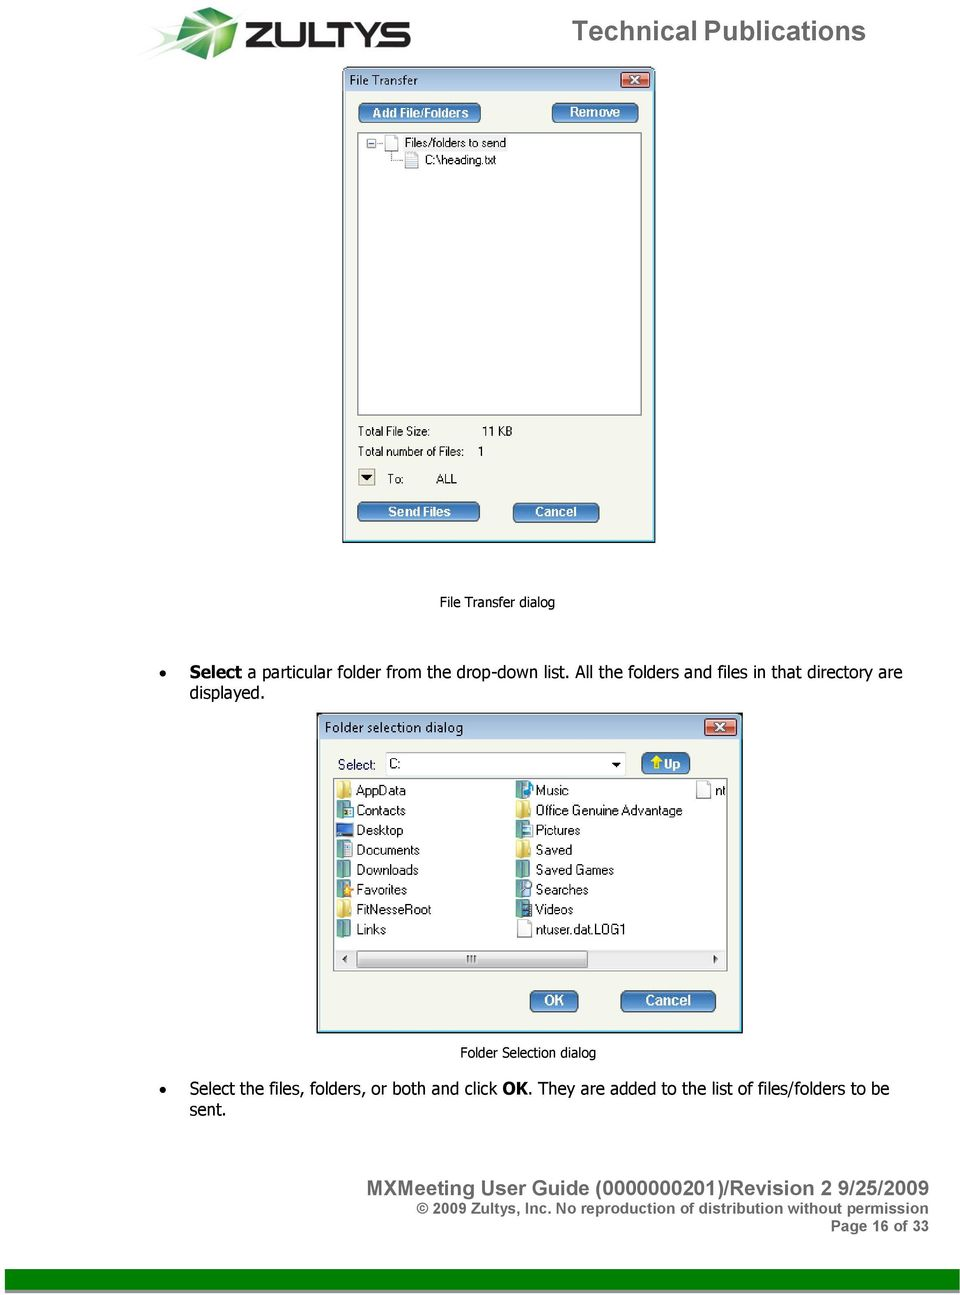 Folder Selection dialog Select the files, folders, or both and click